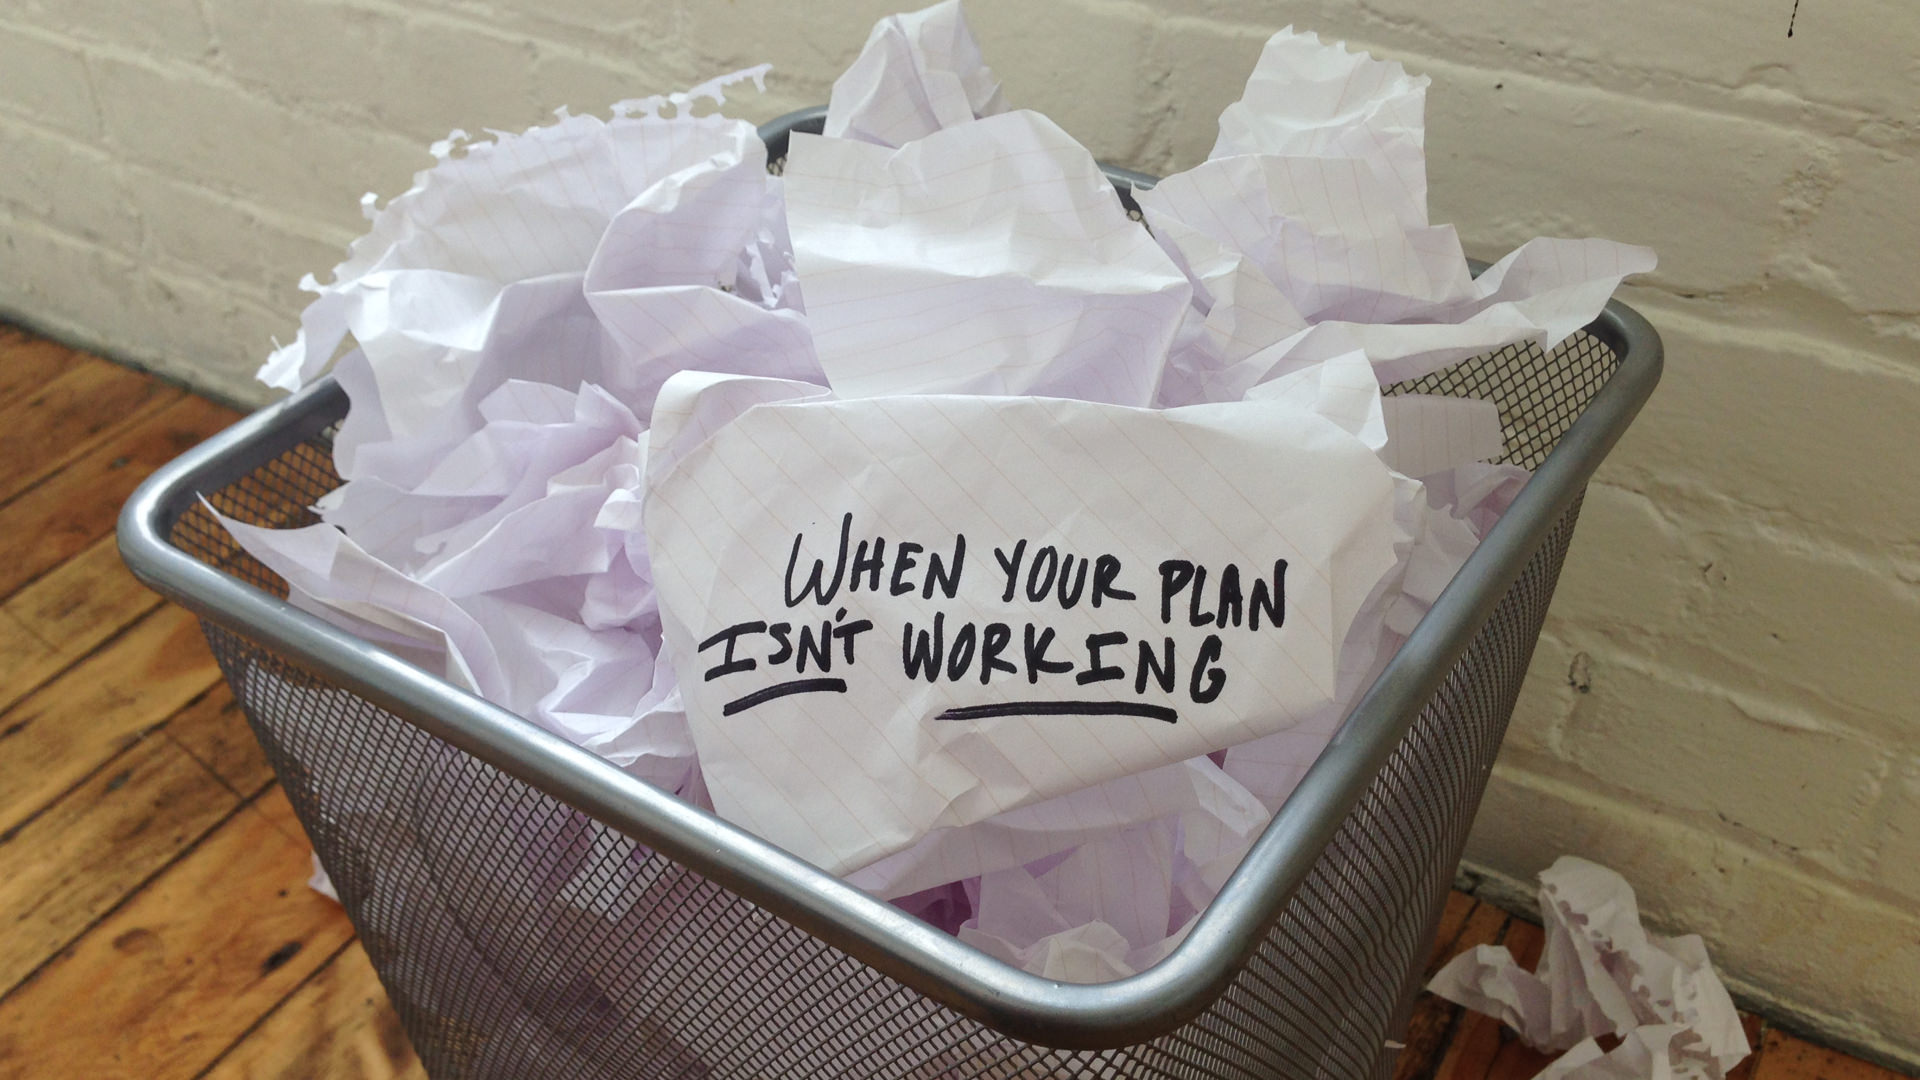 Sometimes the plan you're working...just isn't working.